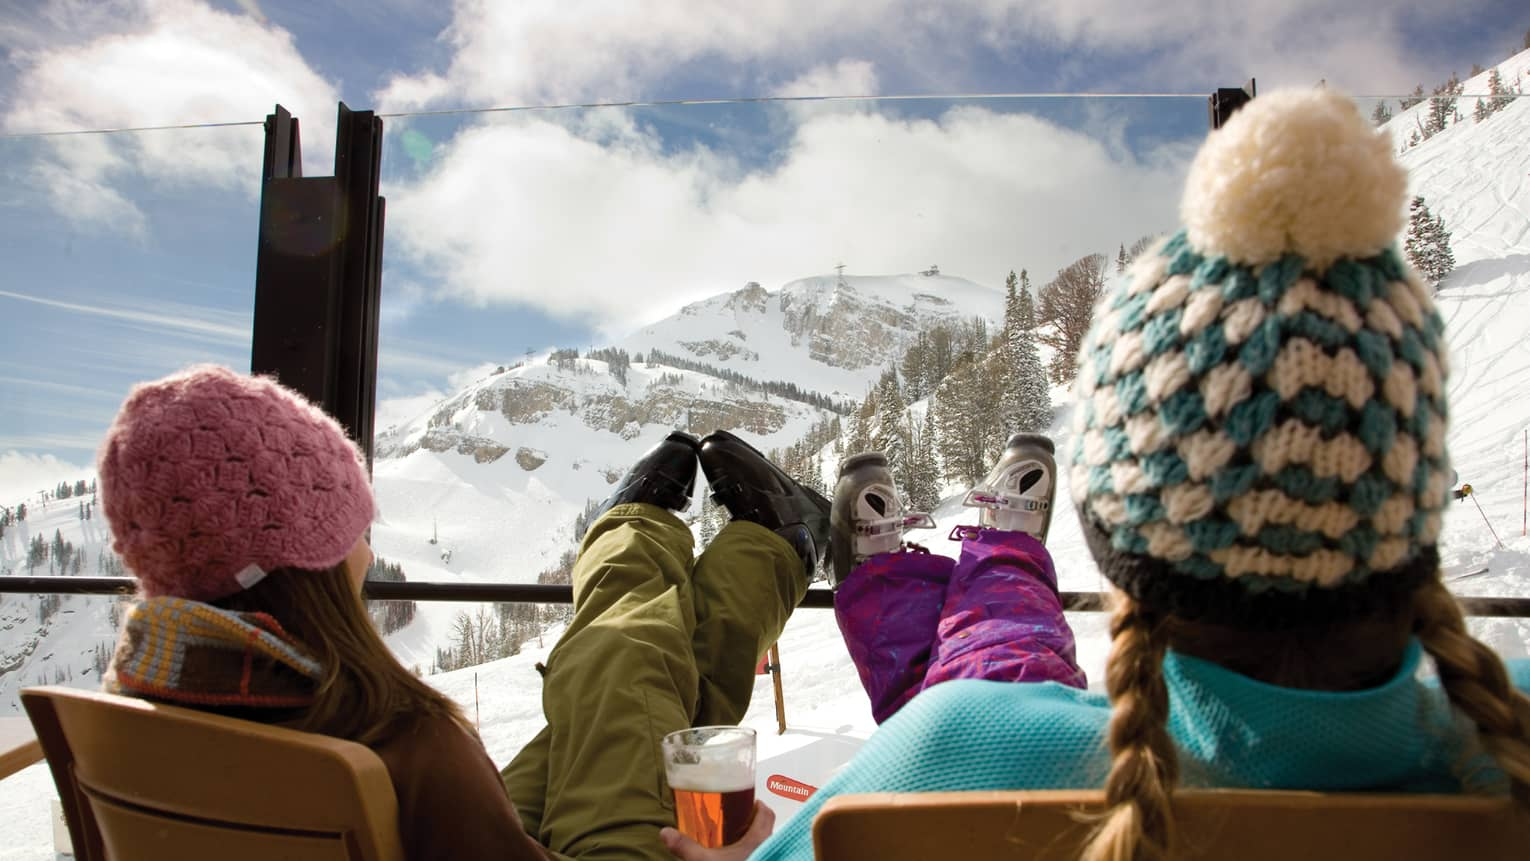 Two guests wearing hats and snow gear relax with their feet up near the ski slopes